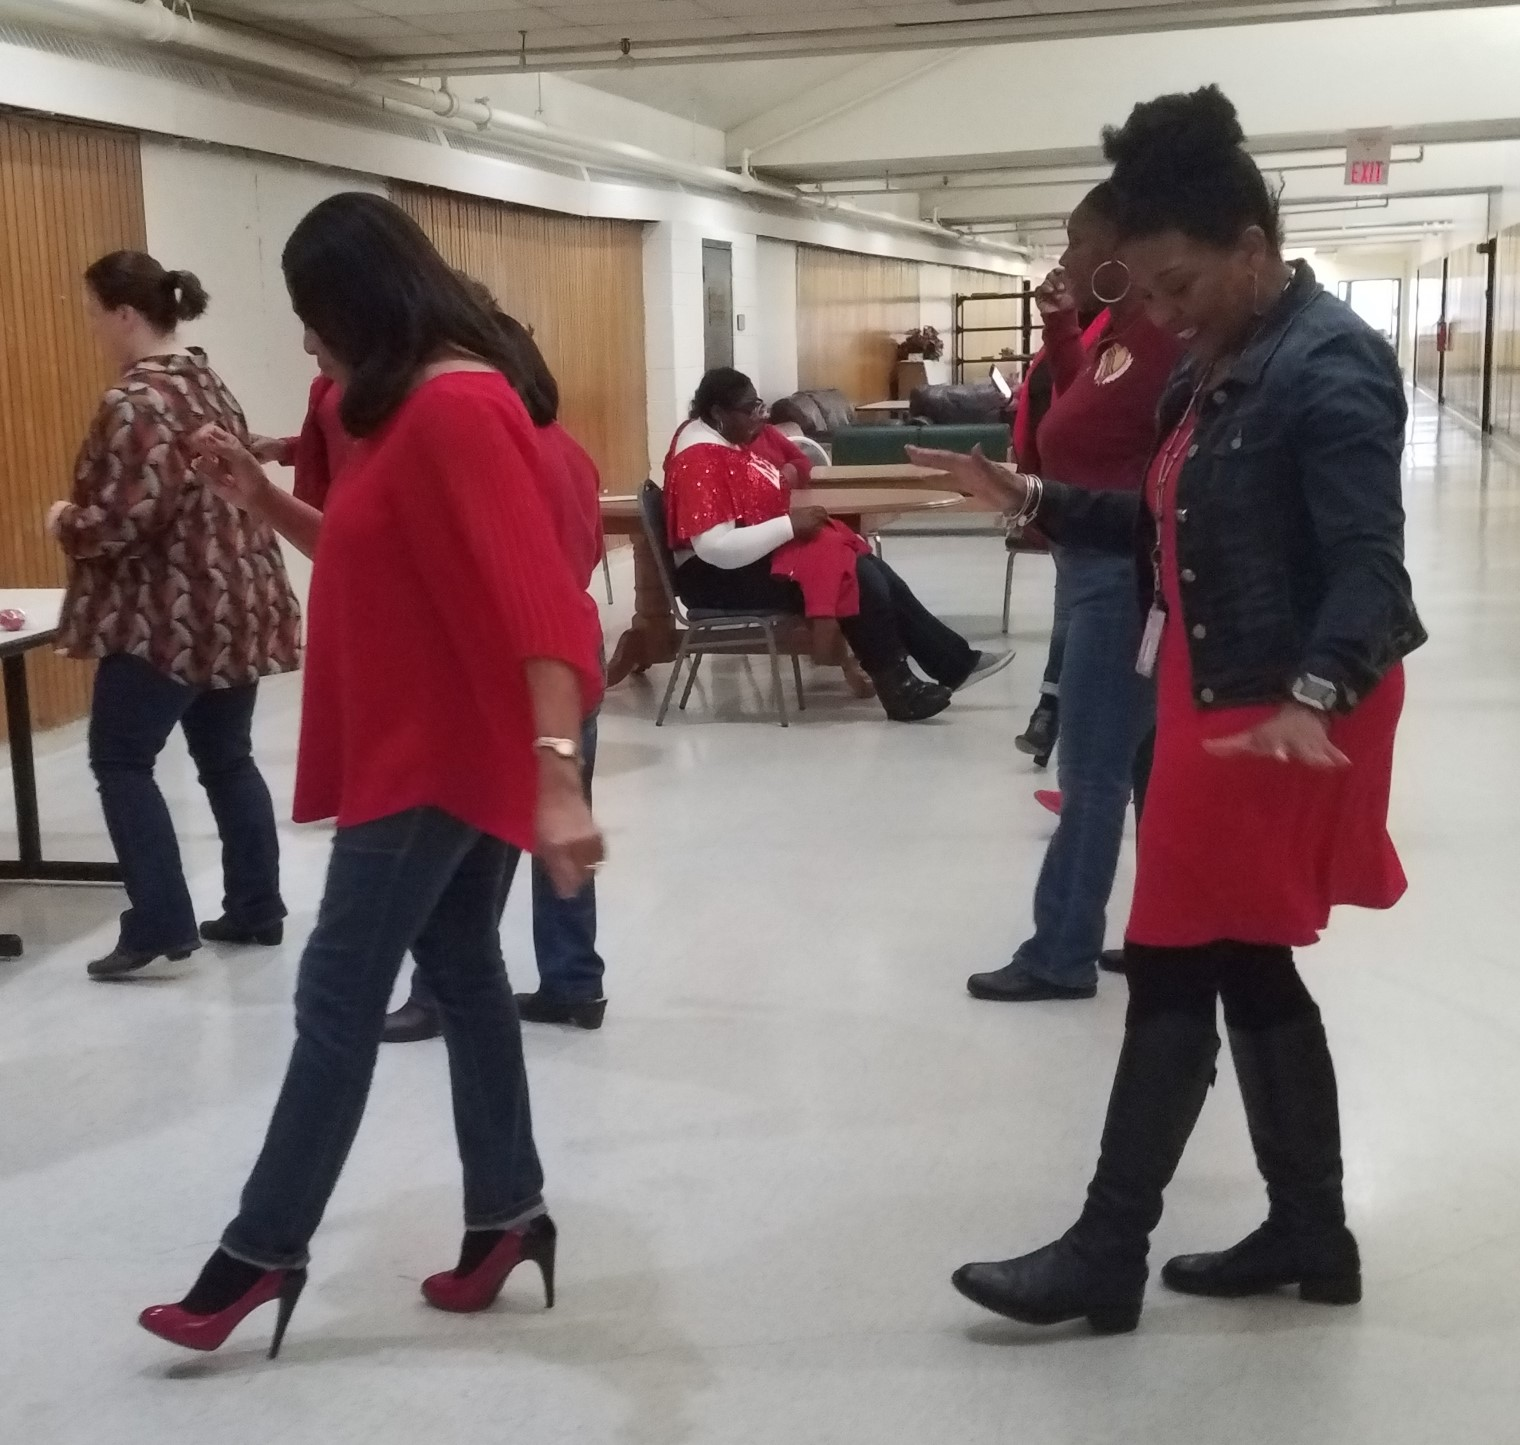 Employees at the West Regional Office took a heart-healthy physical activity break and danced.